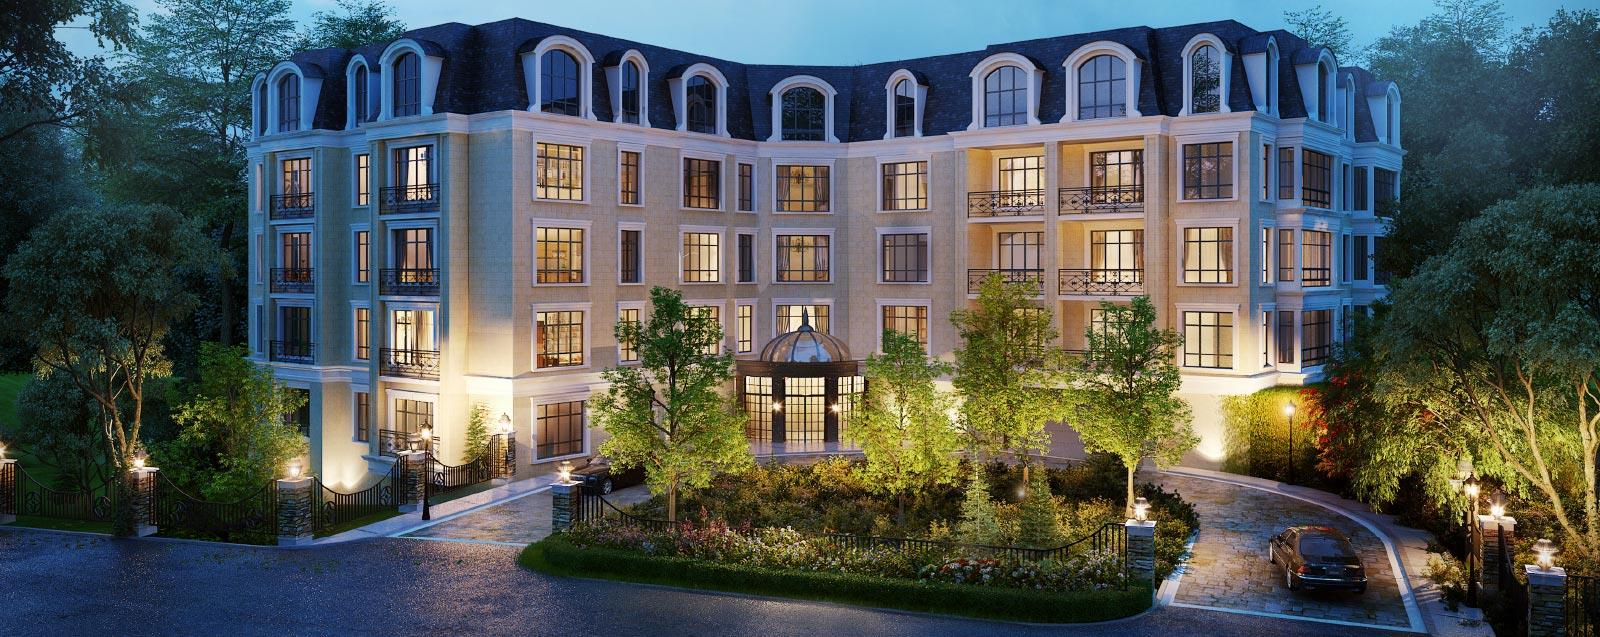 200 RUSSELL HILL LUXURY CONDOS IN FOREST HILL